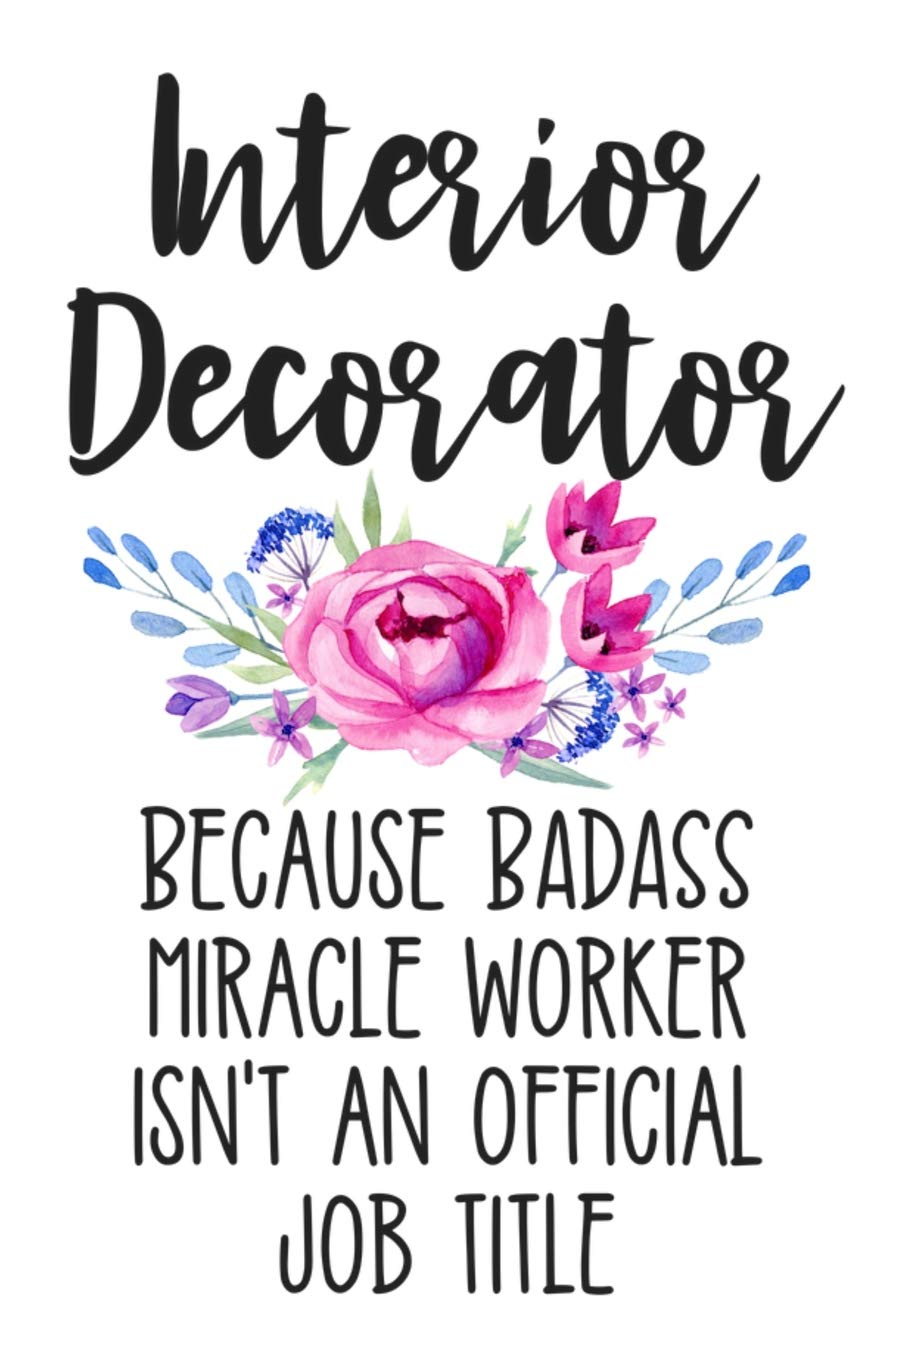 Interior Decorator Because Badass Miracle Worker Isn T An Official Job Title White Lined Journal Notebook For Interior Decorating Women Graduation Gift Designer Artist Press Happy Cricket 9781798434628 Amazon Com Books